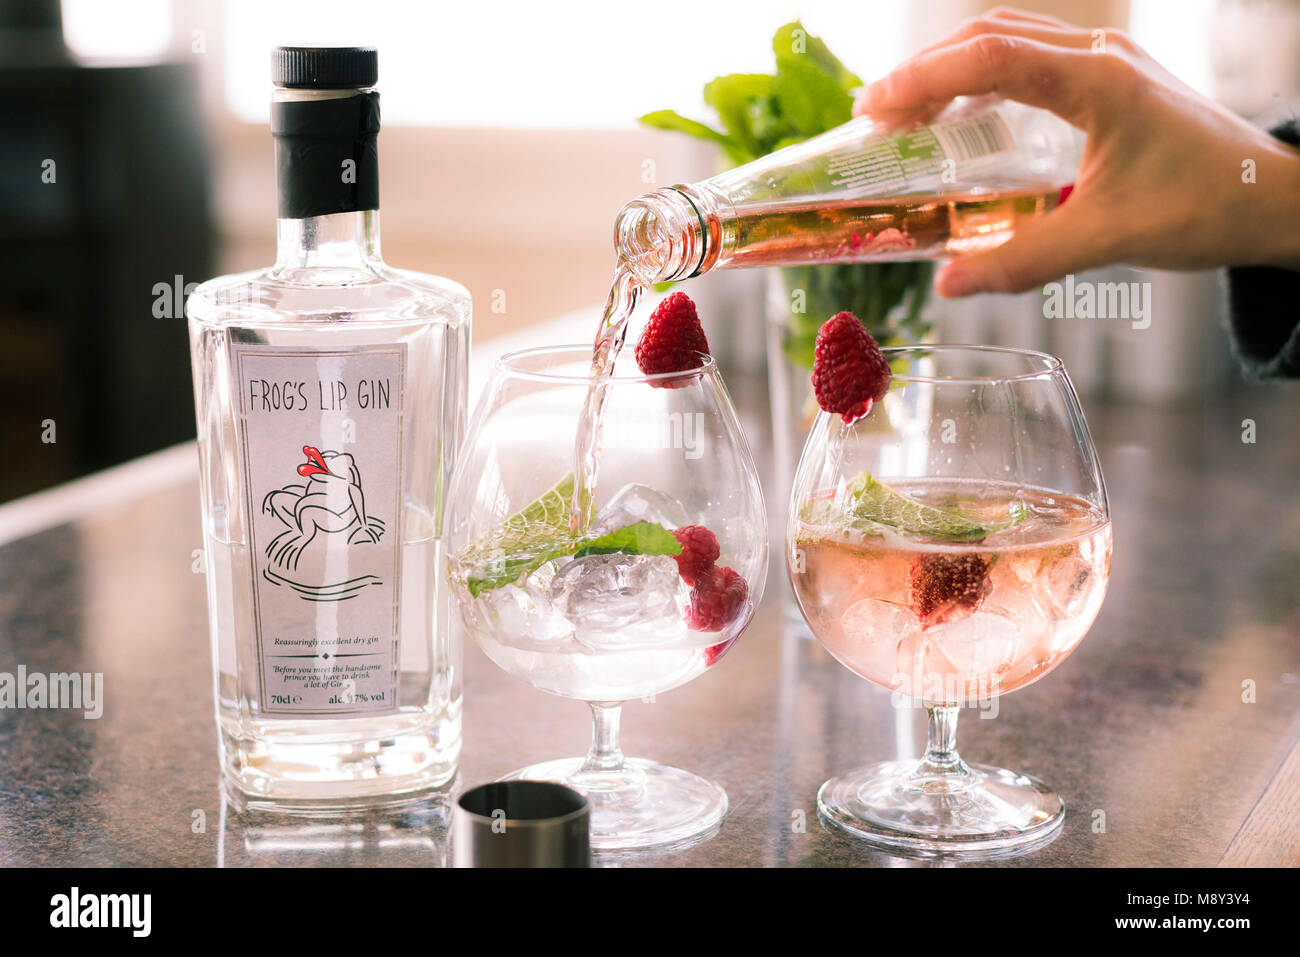 Gin and tonic drinks being prepared. - Stock Image